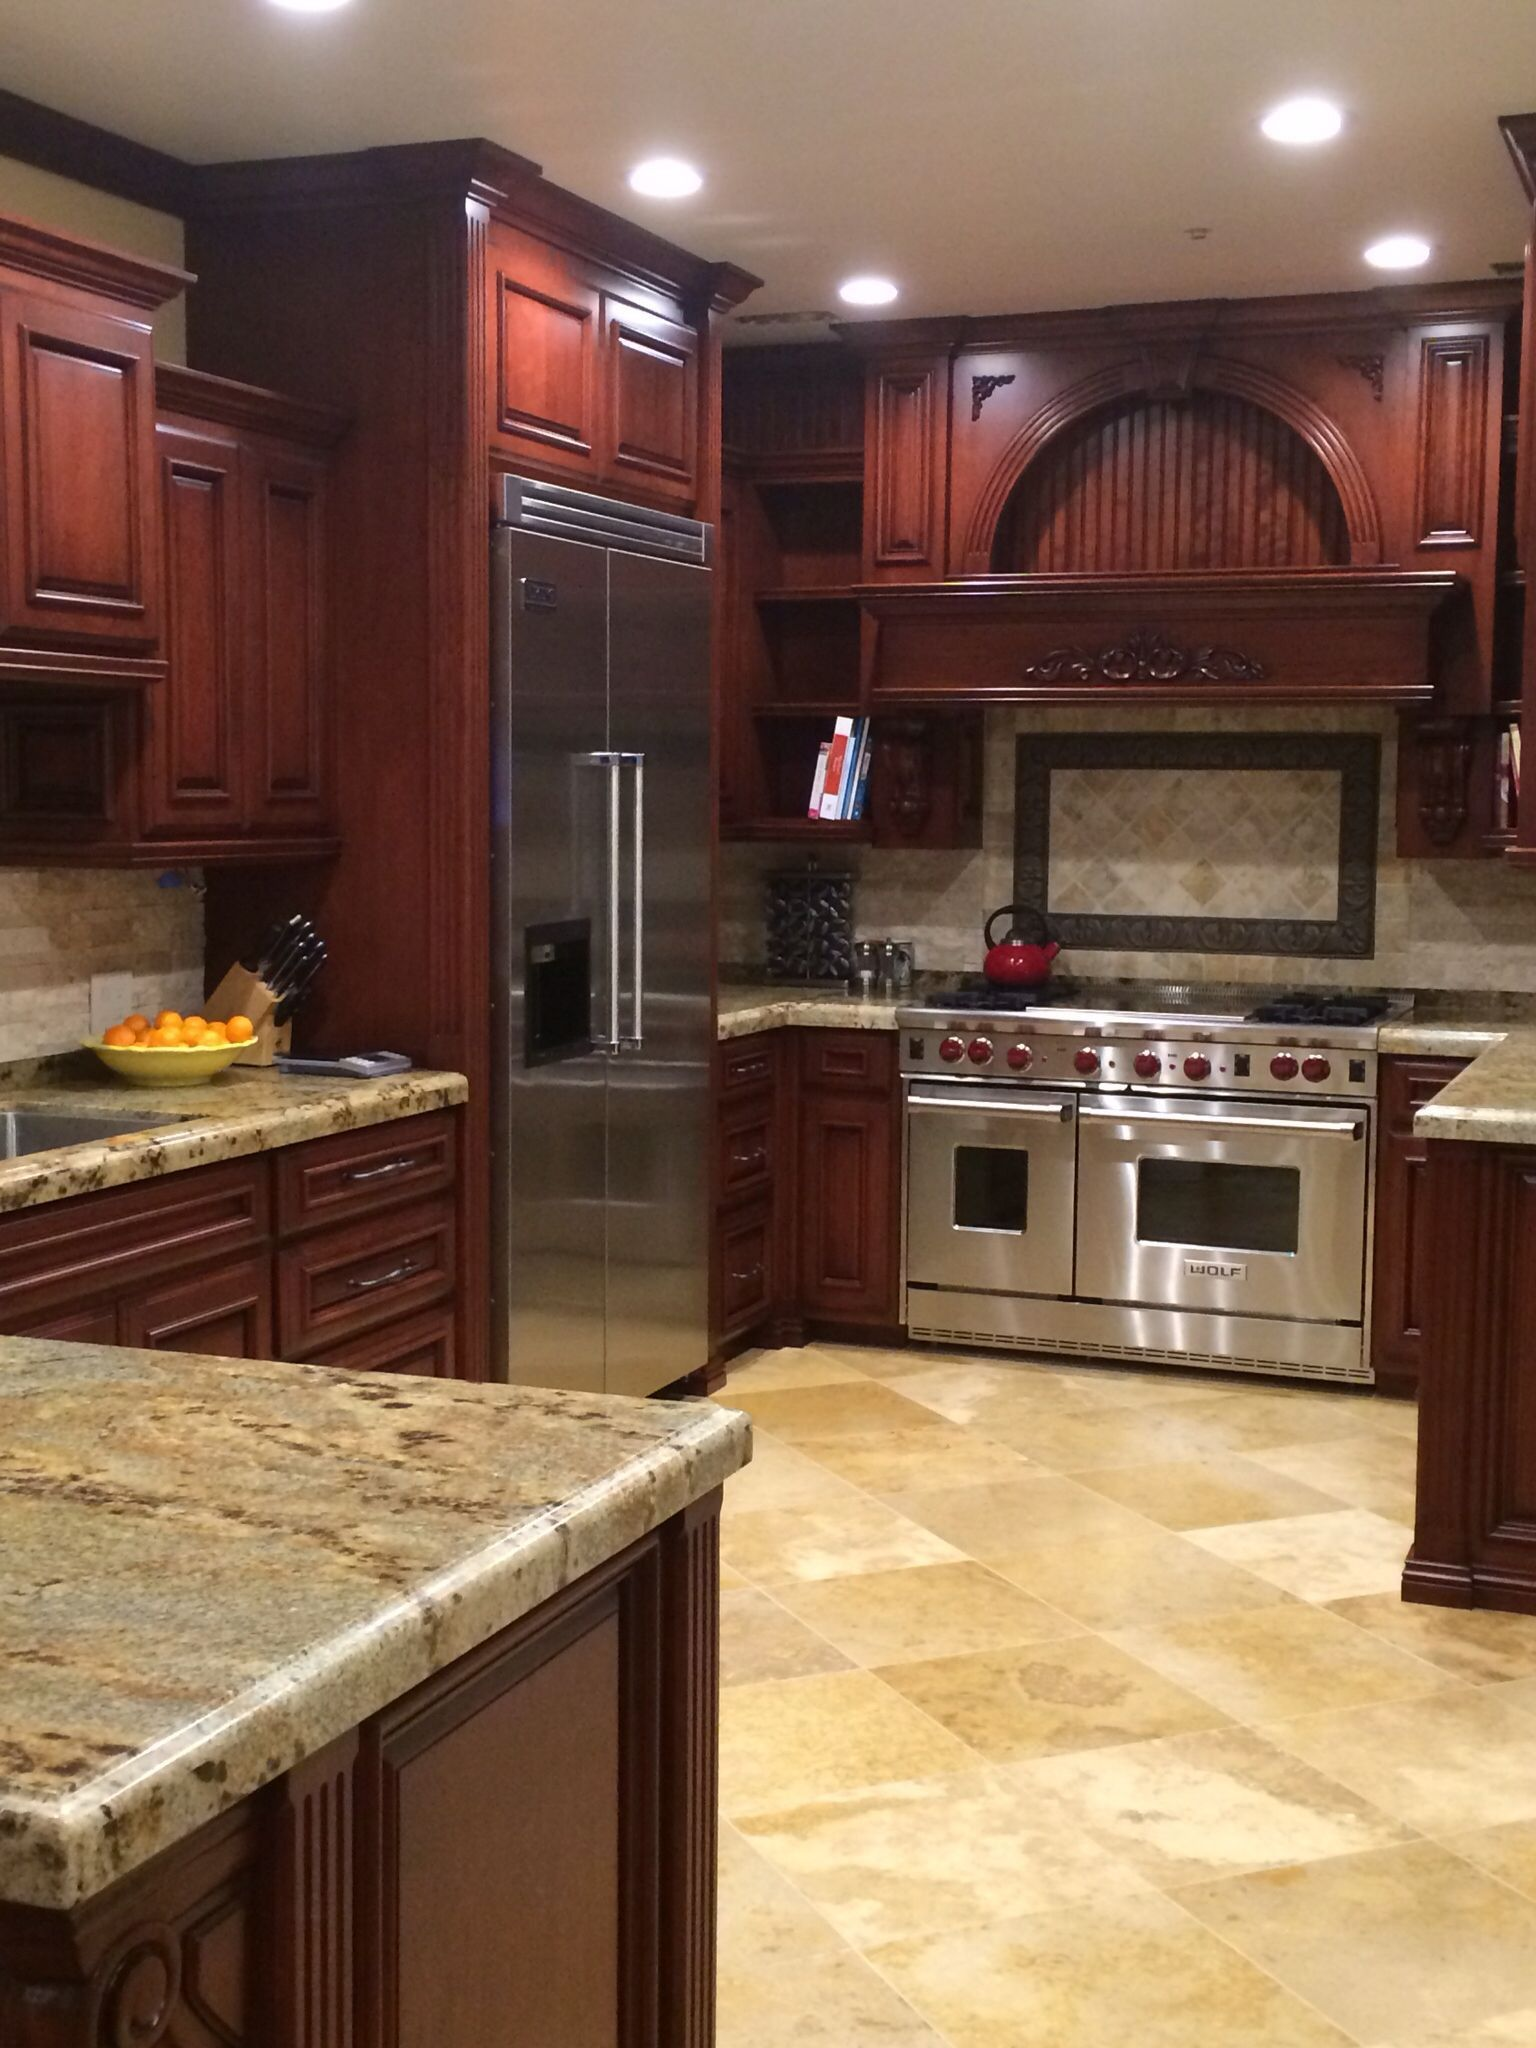 inspirational kitchen ideas dark cabinets cherry beautiful kitchen cabinet color in 2020 on kitchen paint colors id=80723